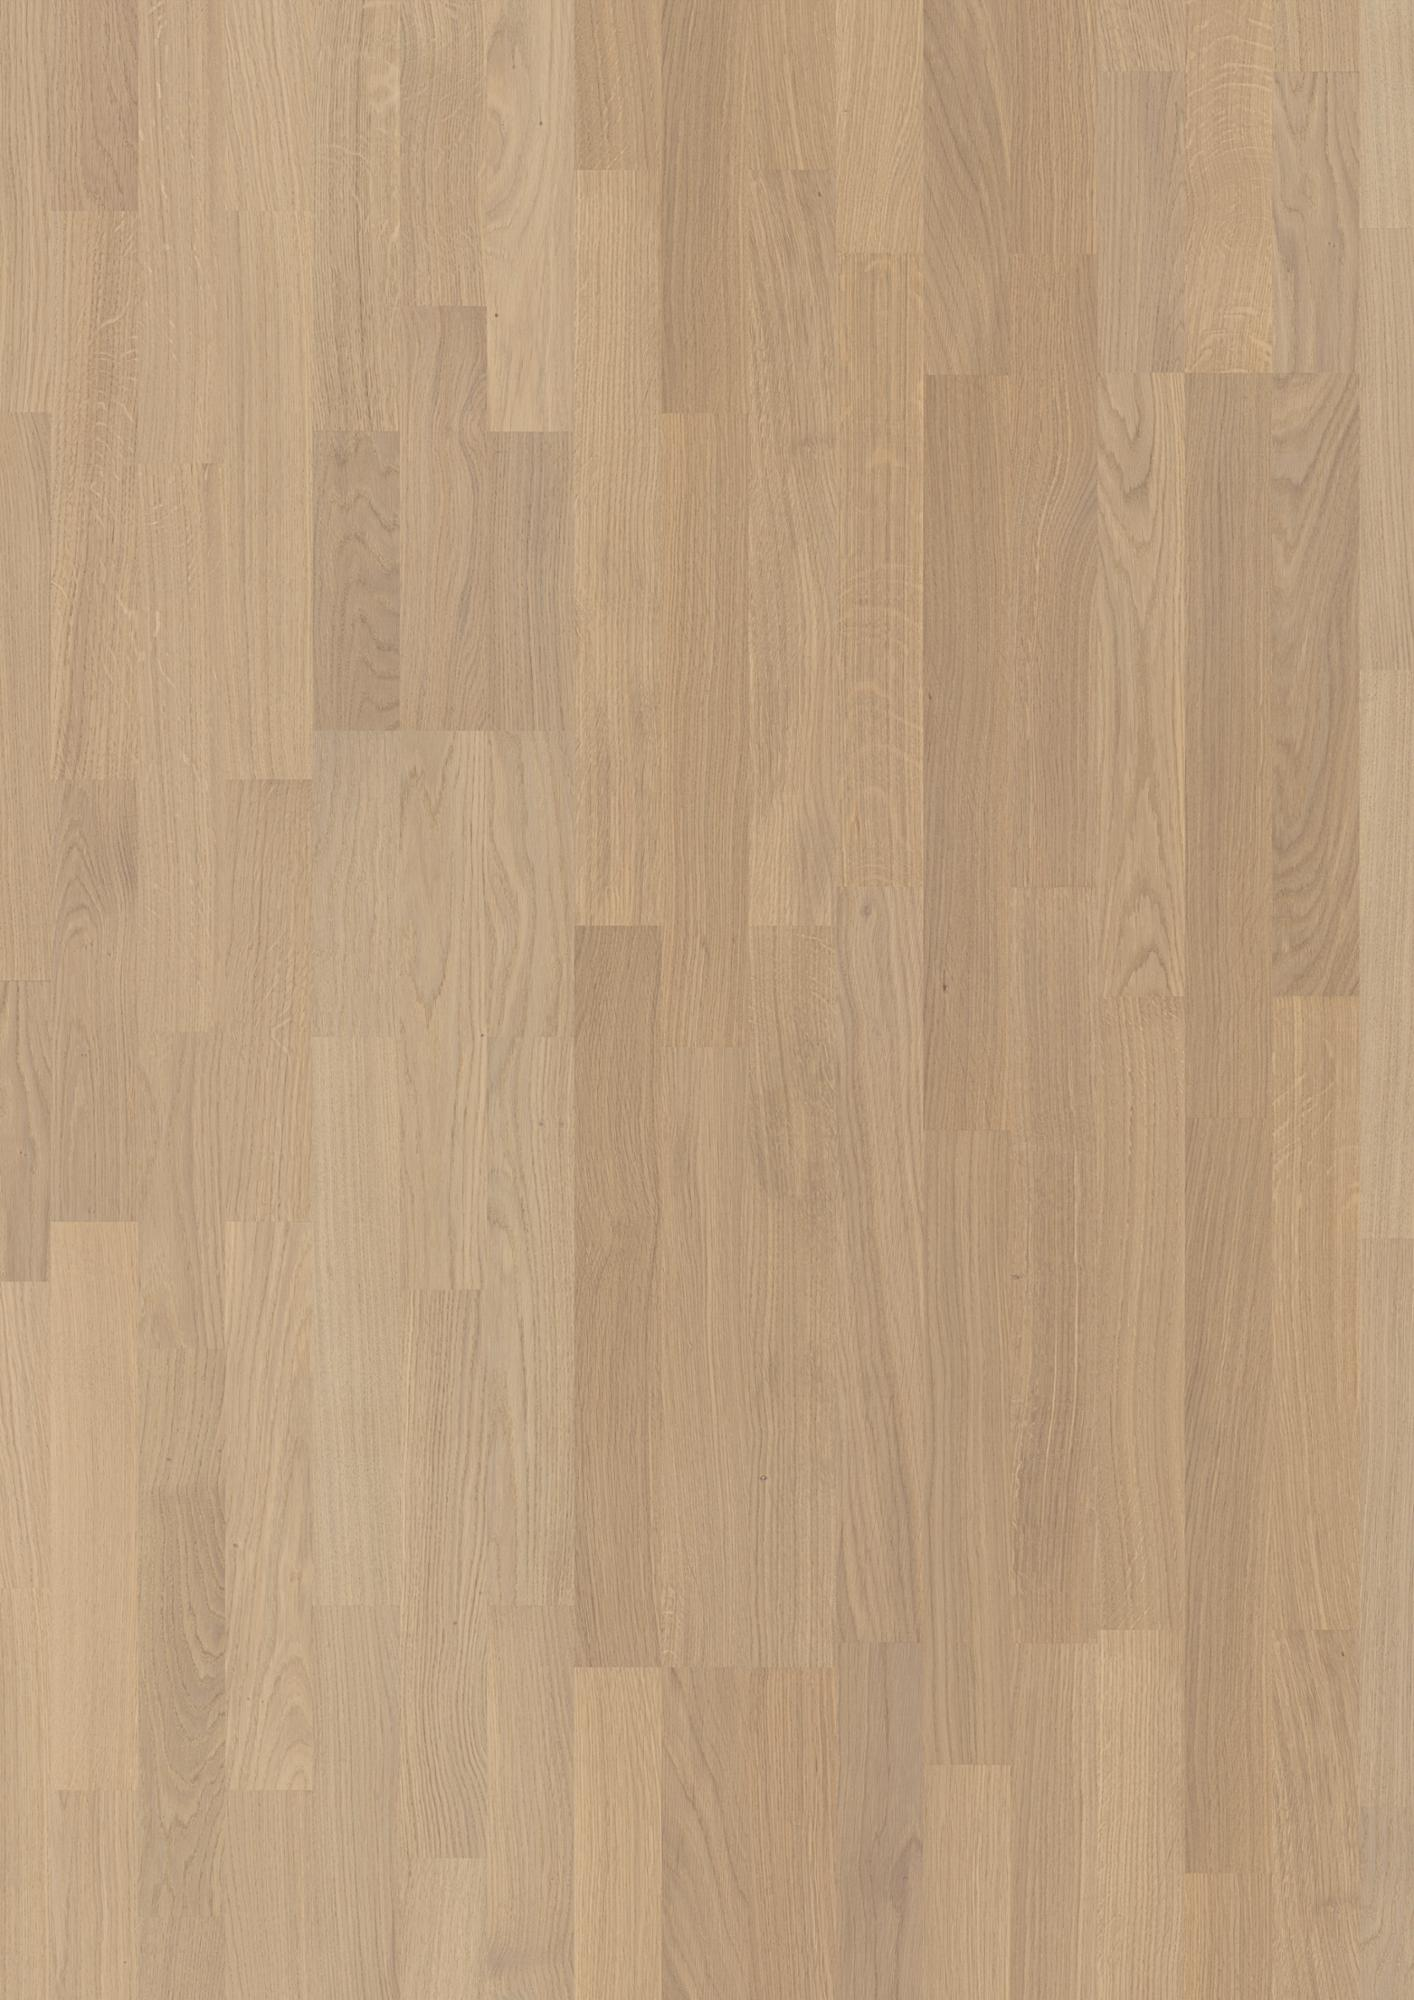 Oak Andante, Live Pure lacquer, Not brushed, Square edged, Longstrip 3-Strip, 14x215x2200mm